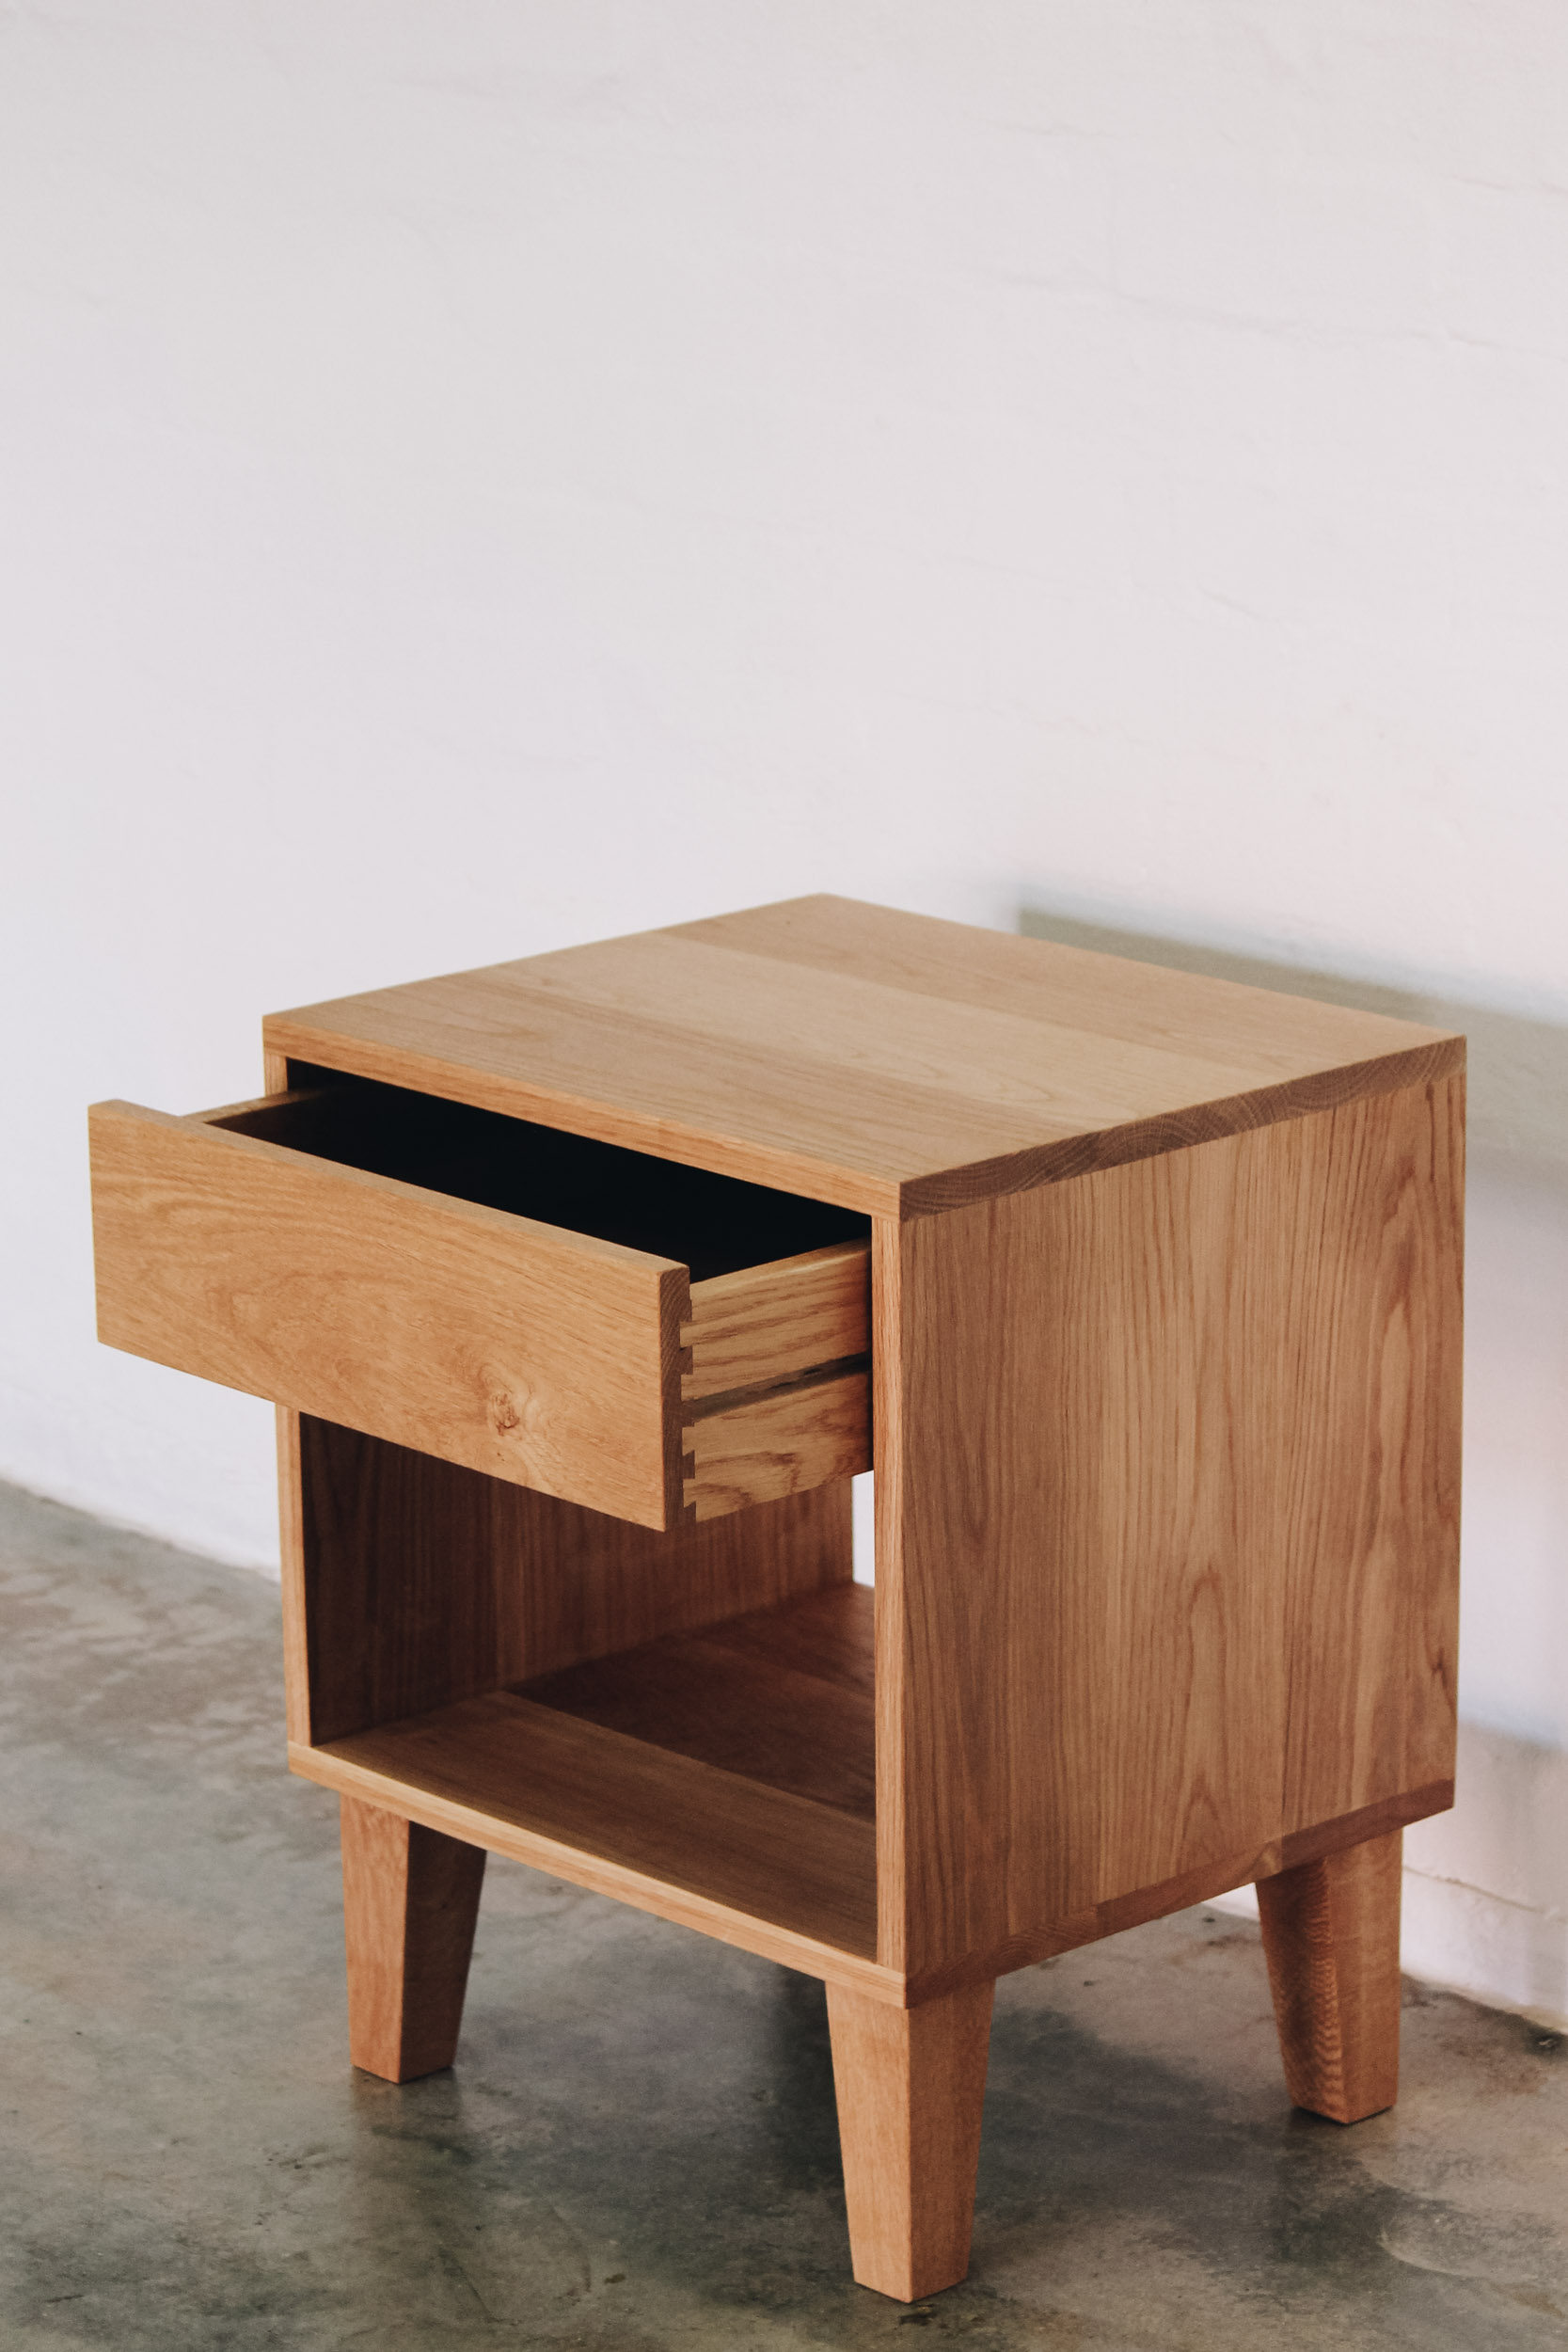 Al and Imo Handmade - American Oak Custom Bedside Tables-4.jpg